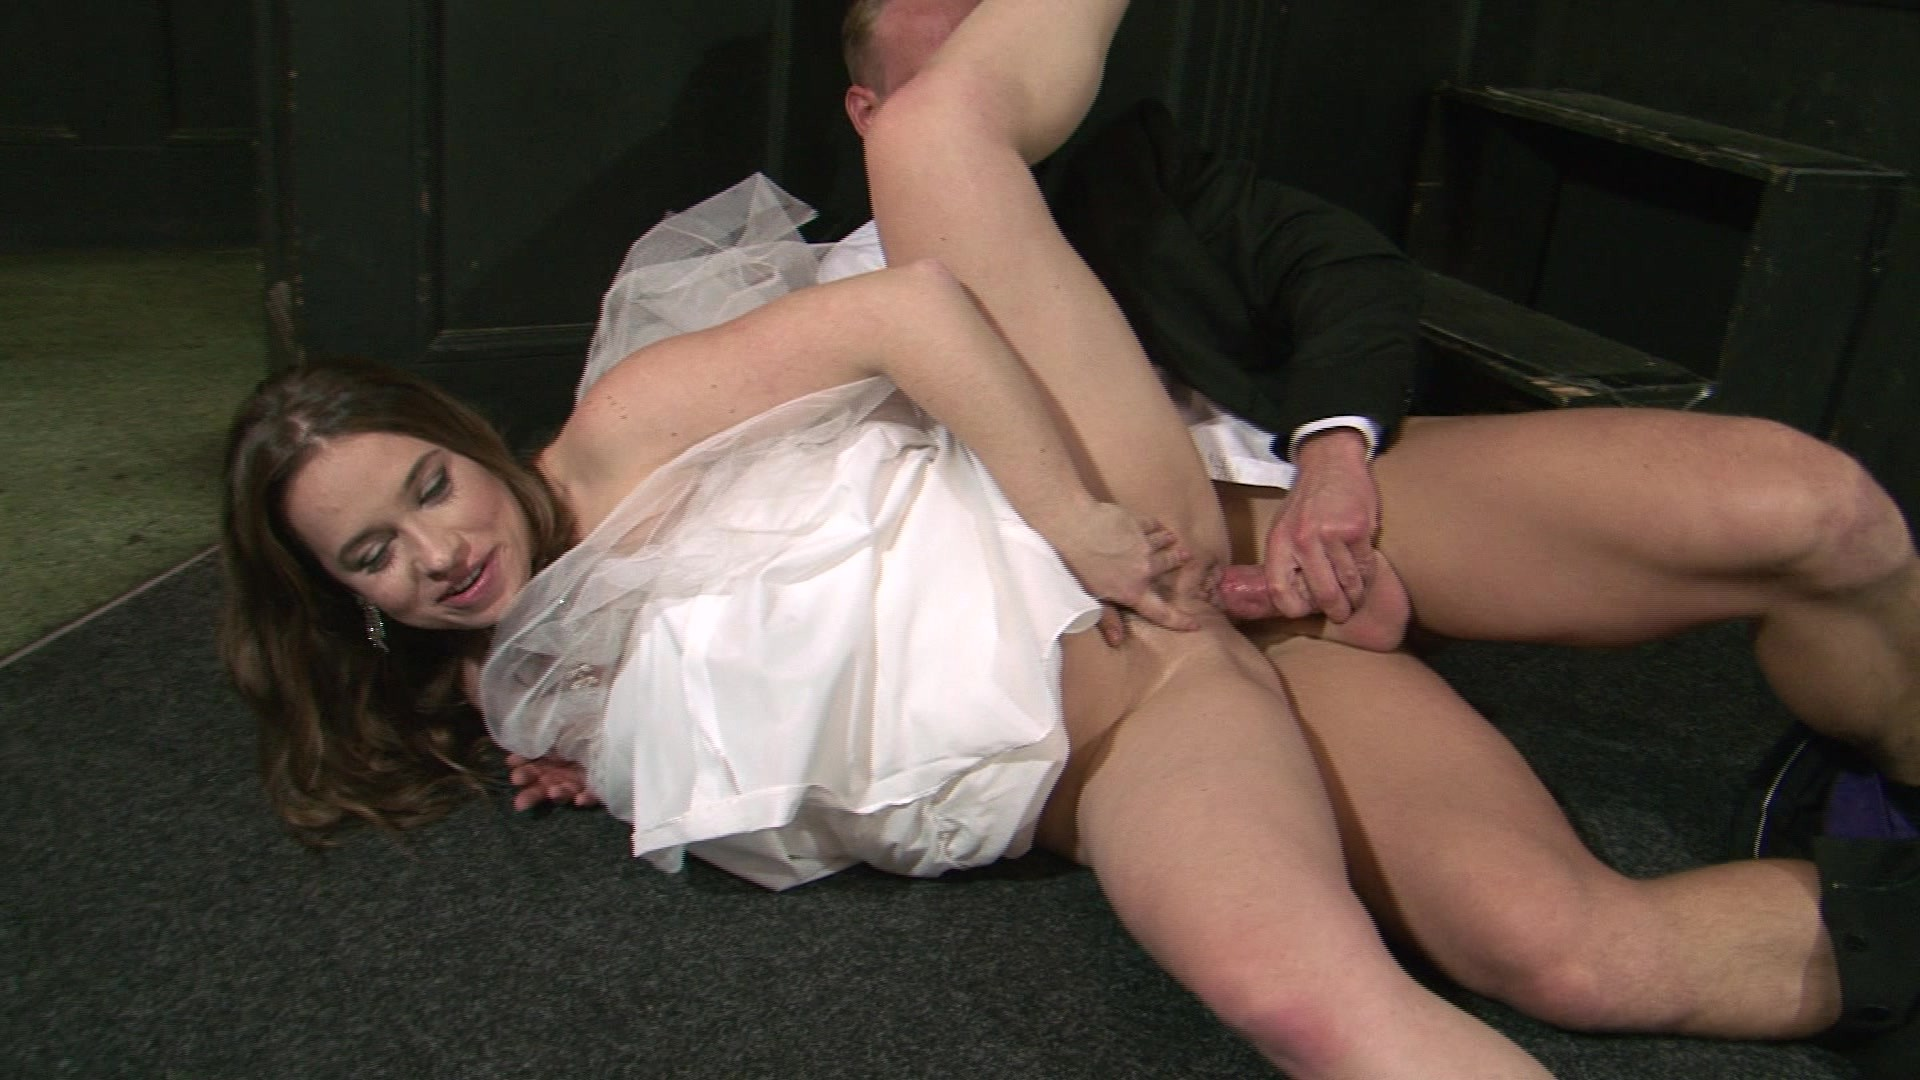 and-porn-bride-abuse-porn-curry-nude